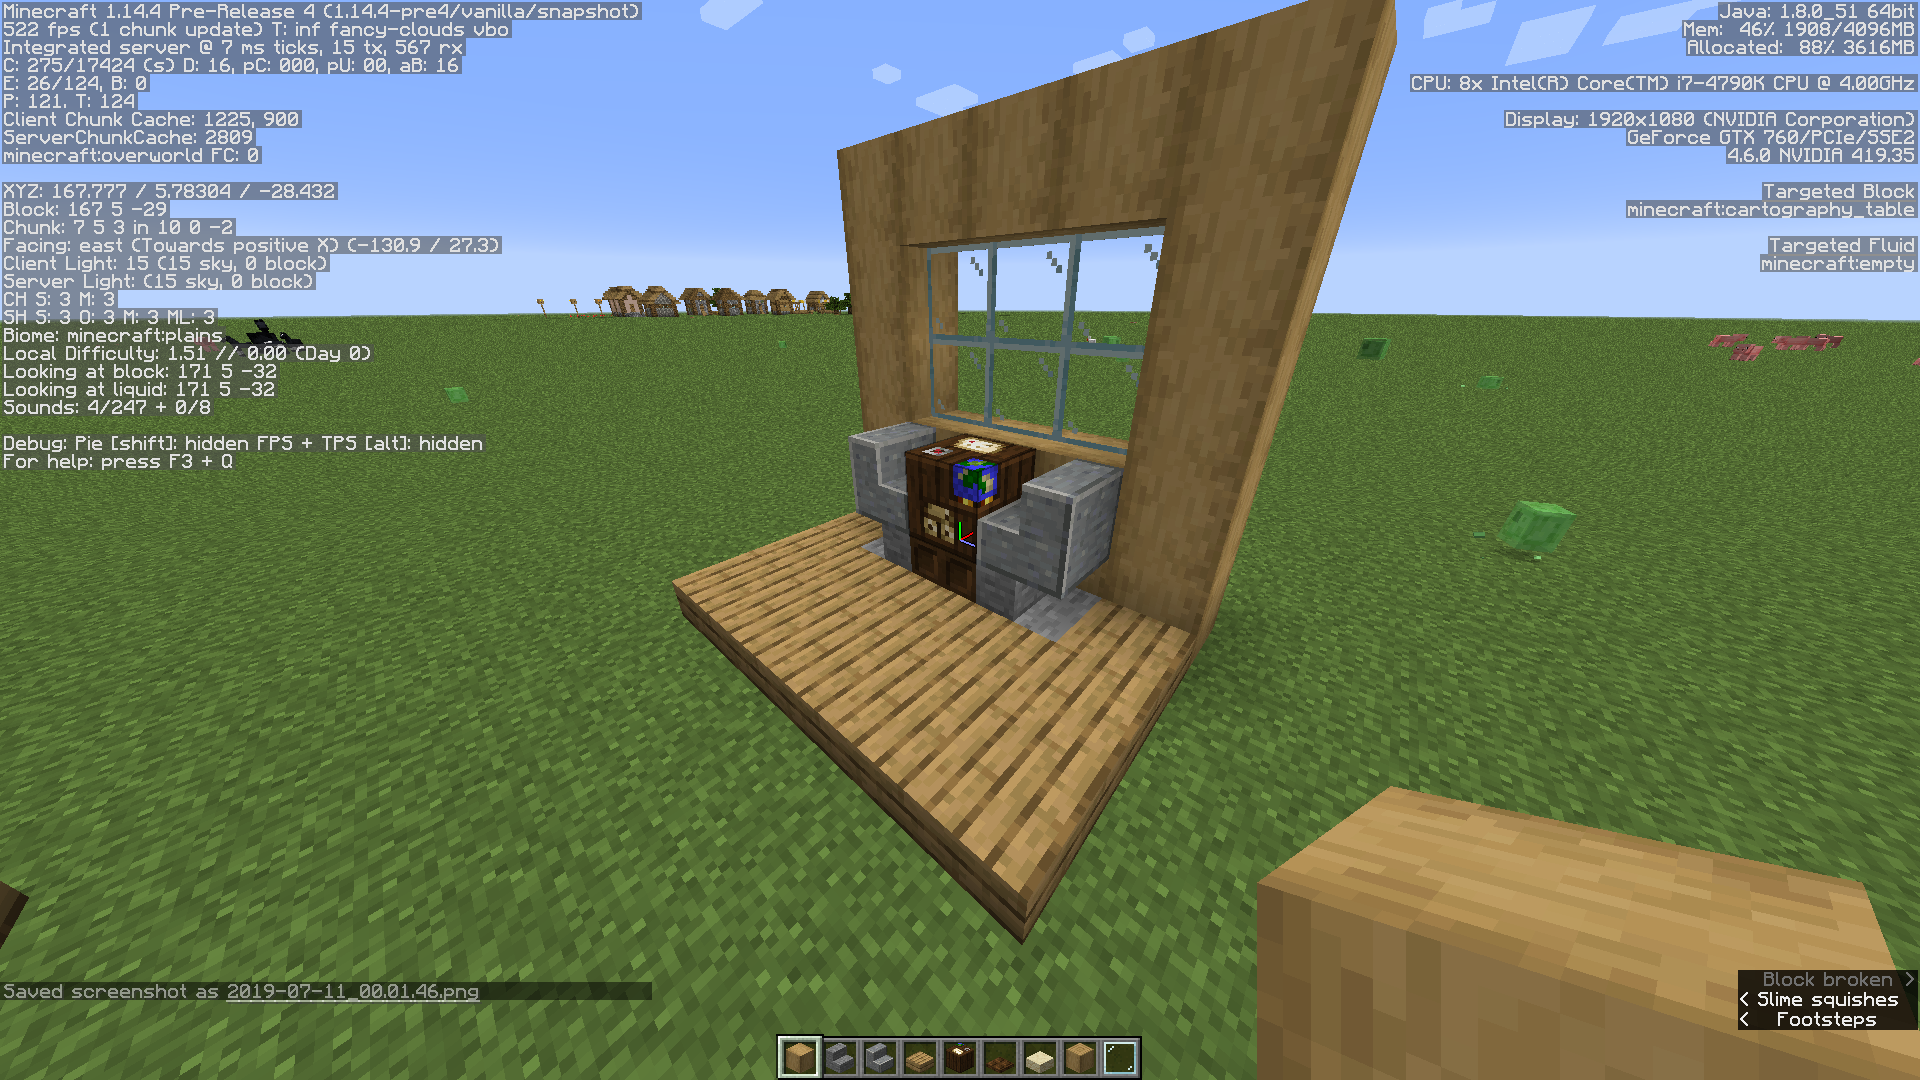 Mc 156466 Crafting Table Cartography Table Fletching Table And Smithing Table Cannot Be Rotated Jira